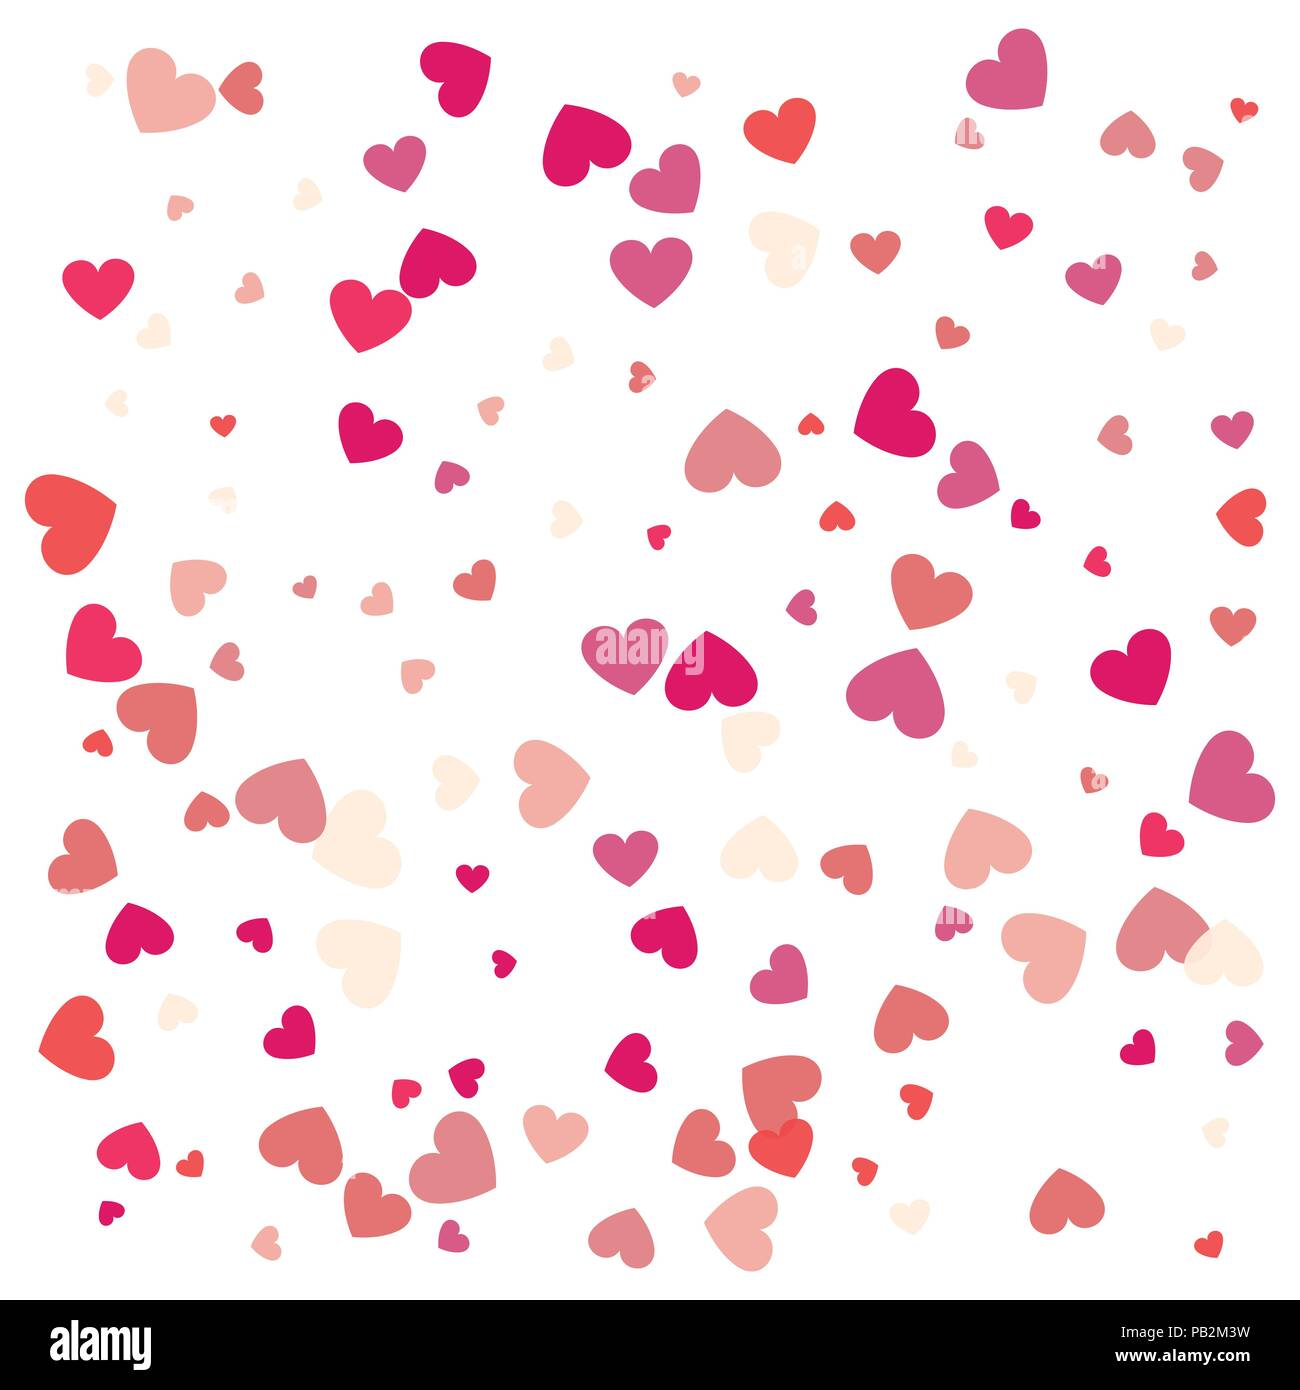 Beautiful Confetti Hearts Falling On Background Invitation Template